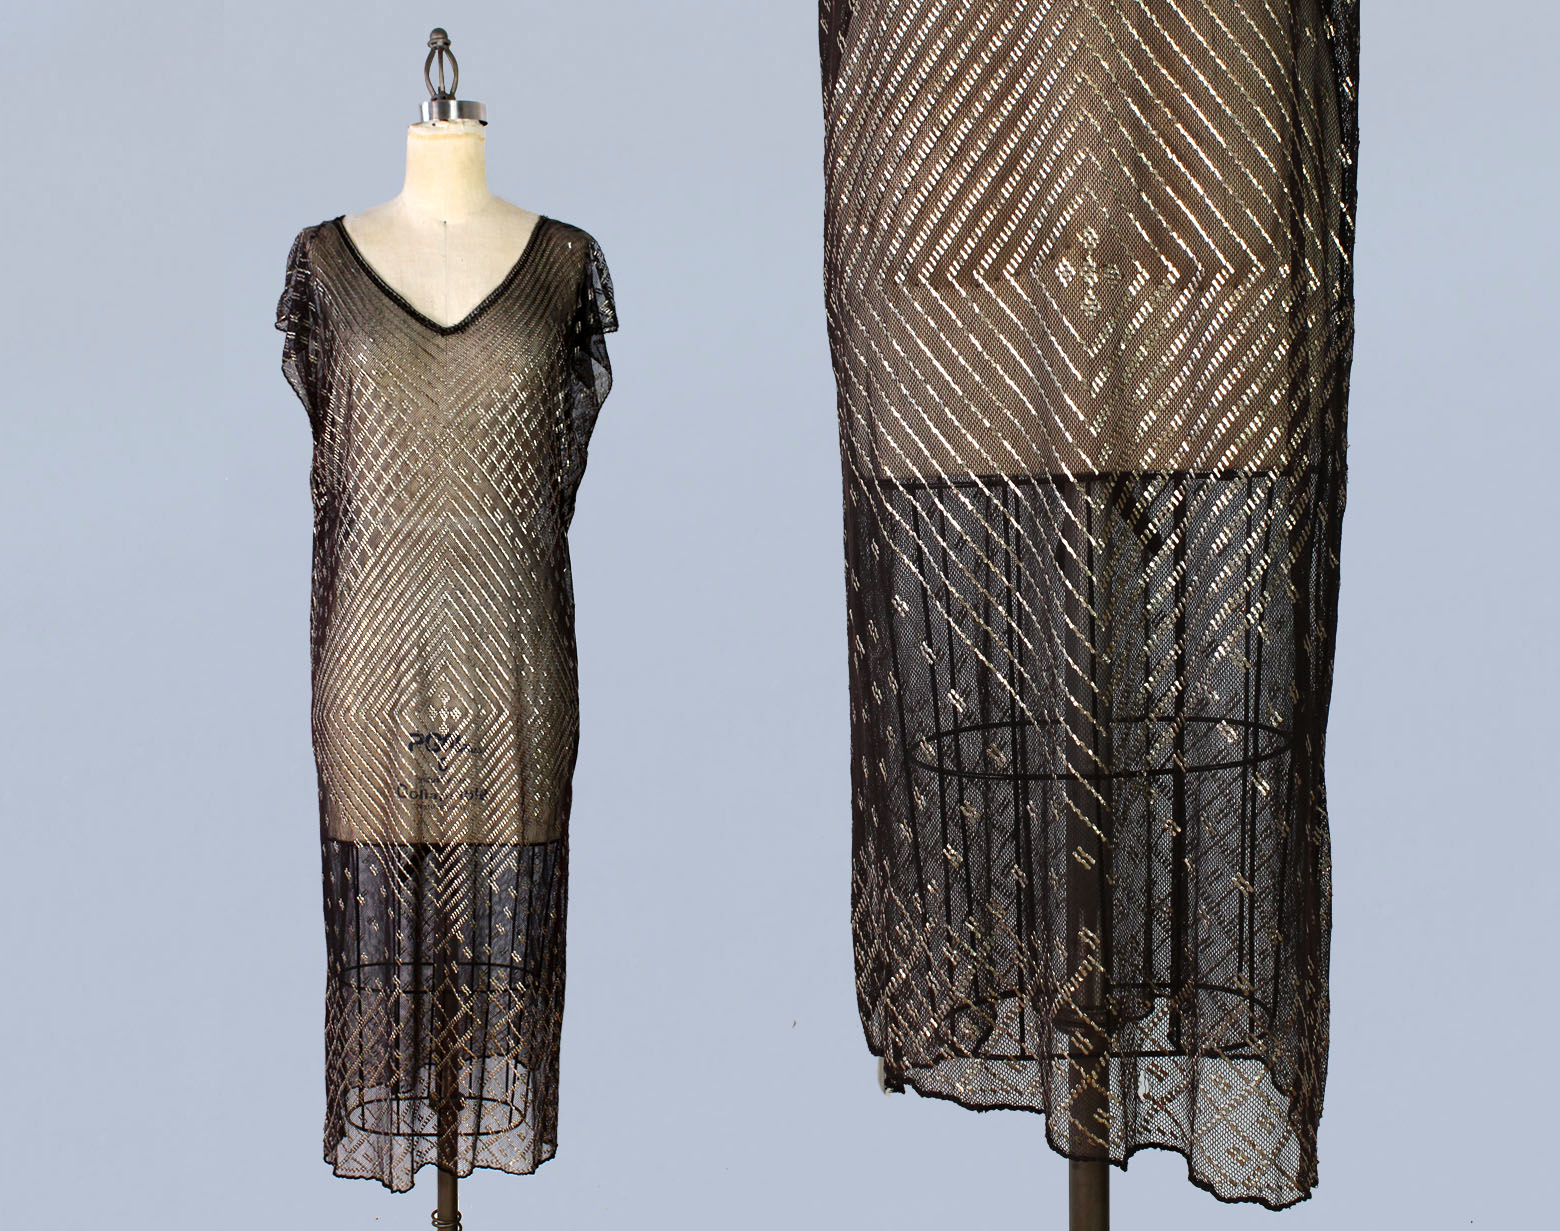 Assuit hammered metal on net dress made from shawl. 1920s.